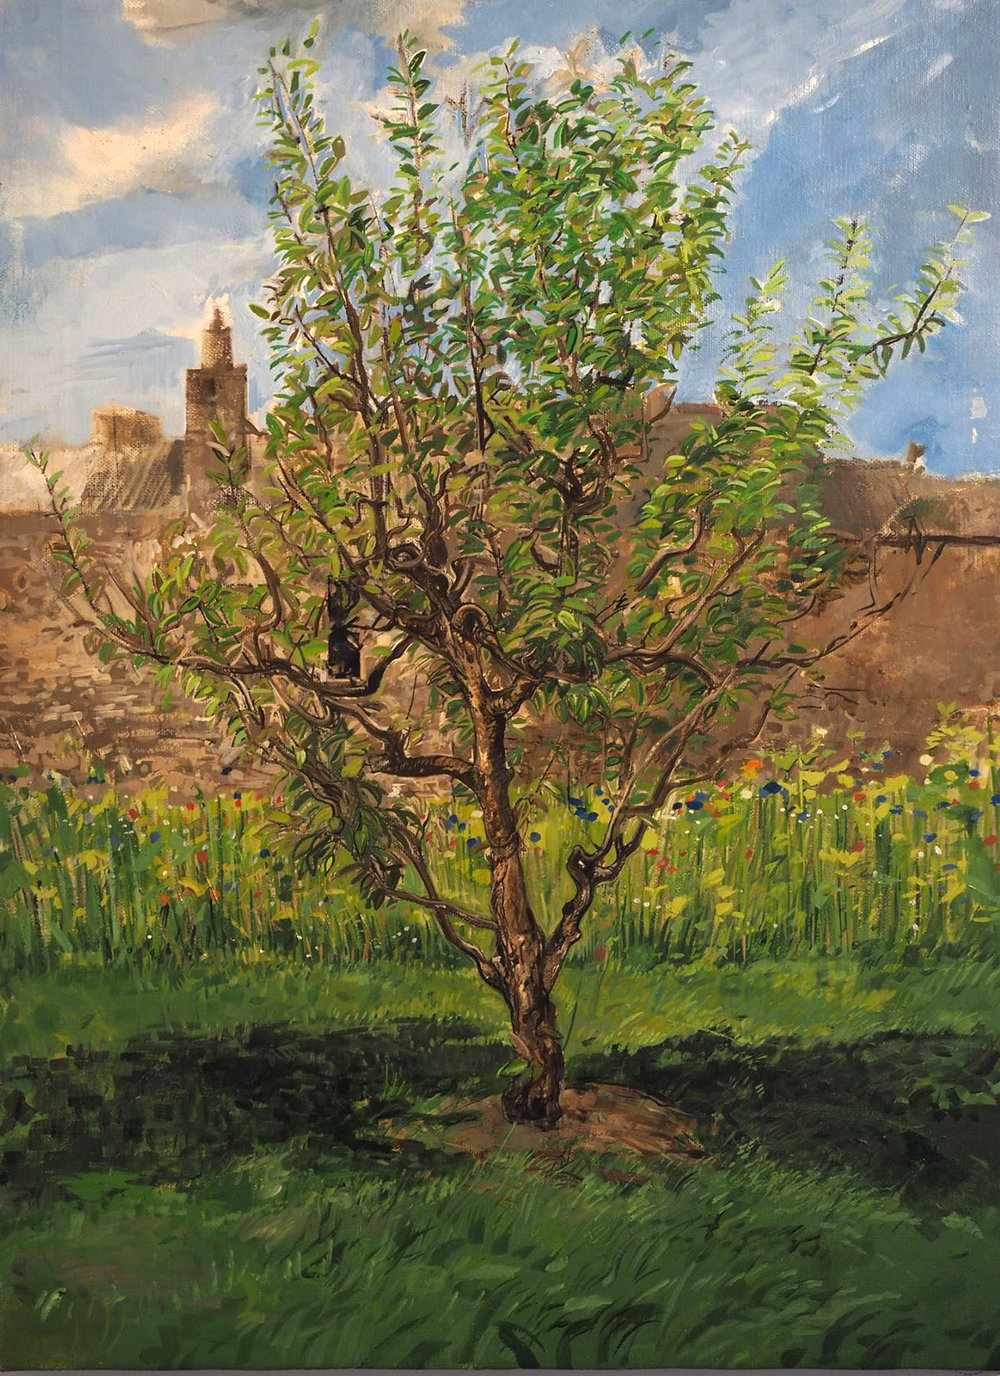 "Pear Tree, acrylic on canvas, 30"" x 40"" image courtesy of Jave Yoshimoto"